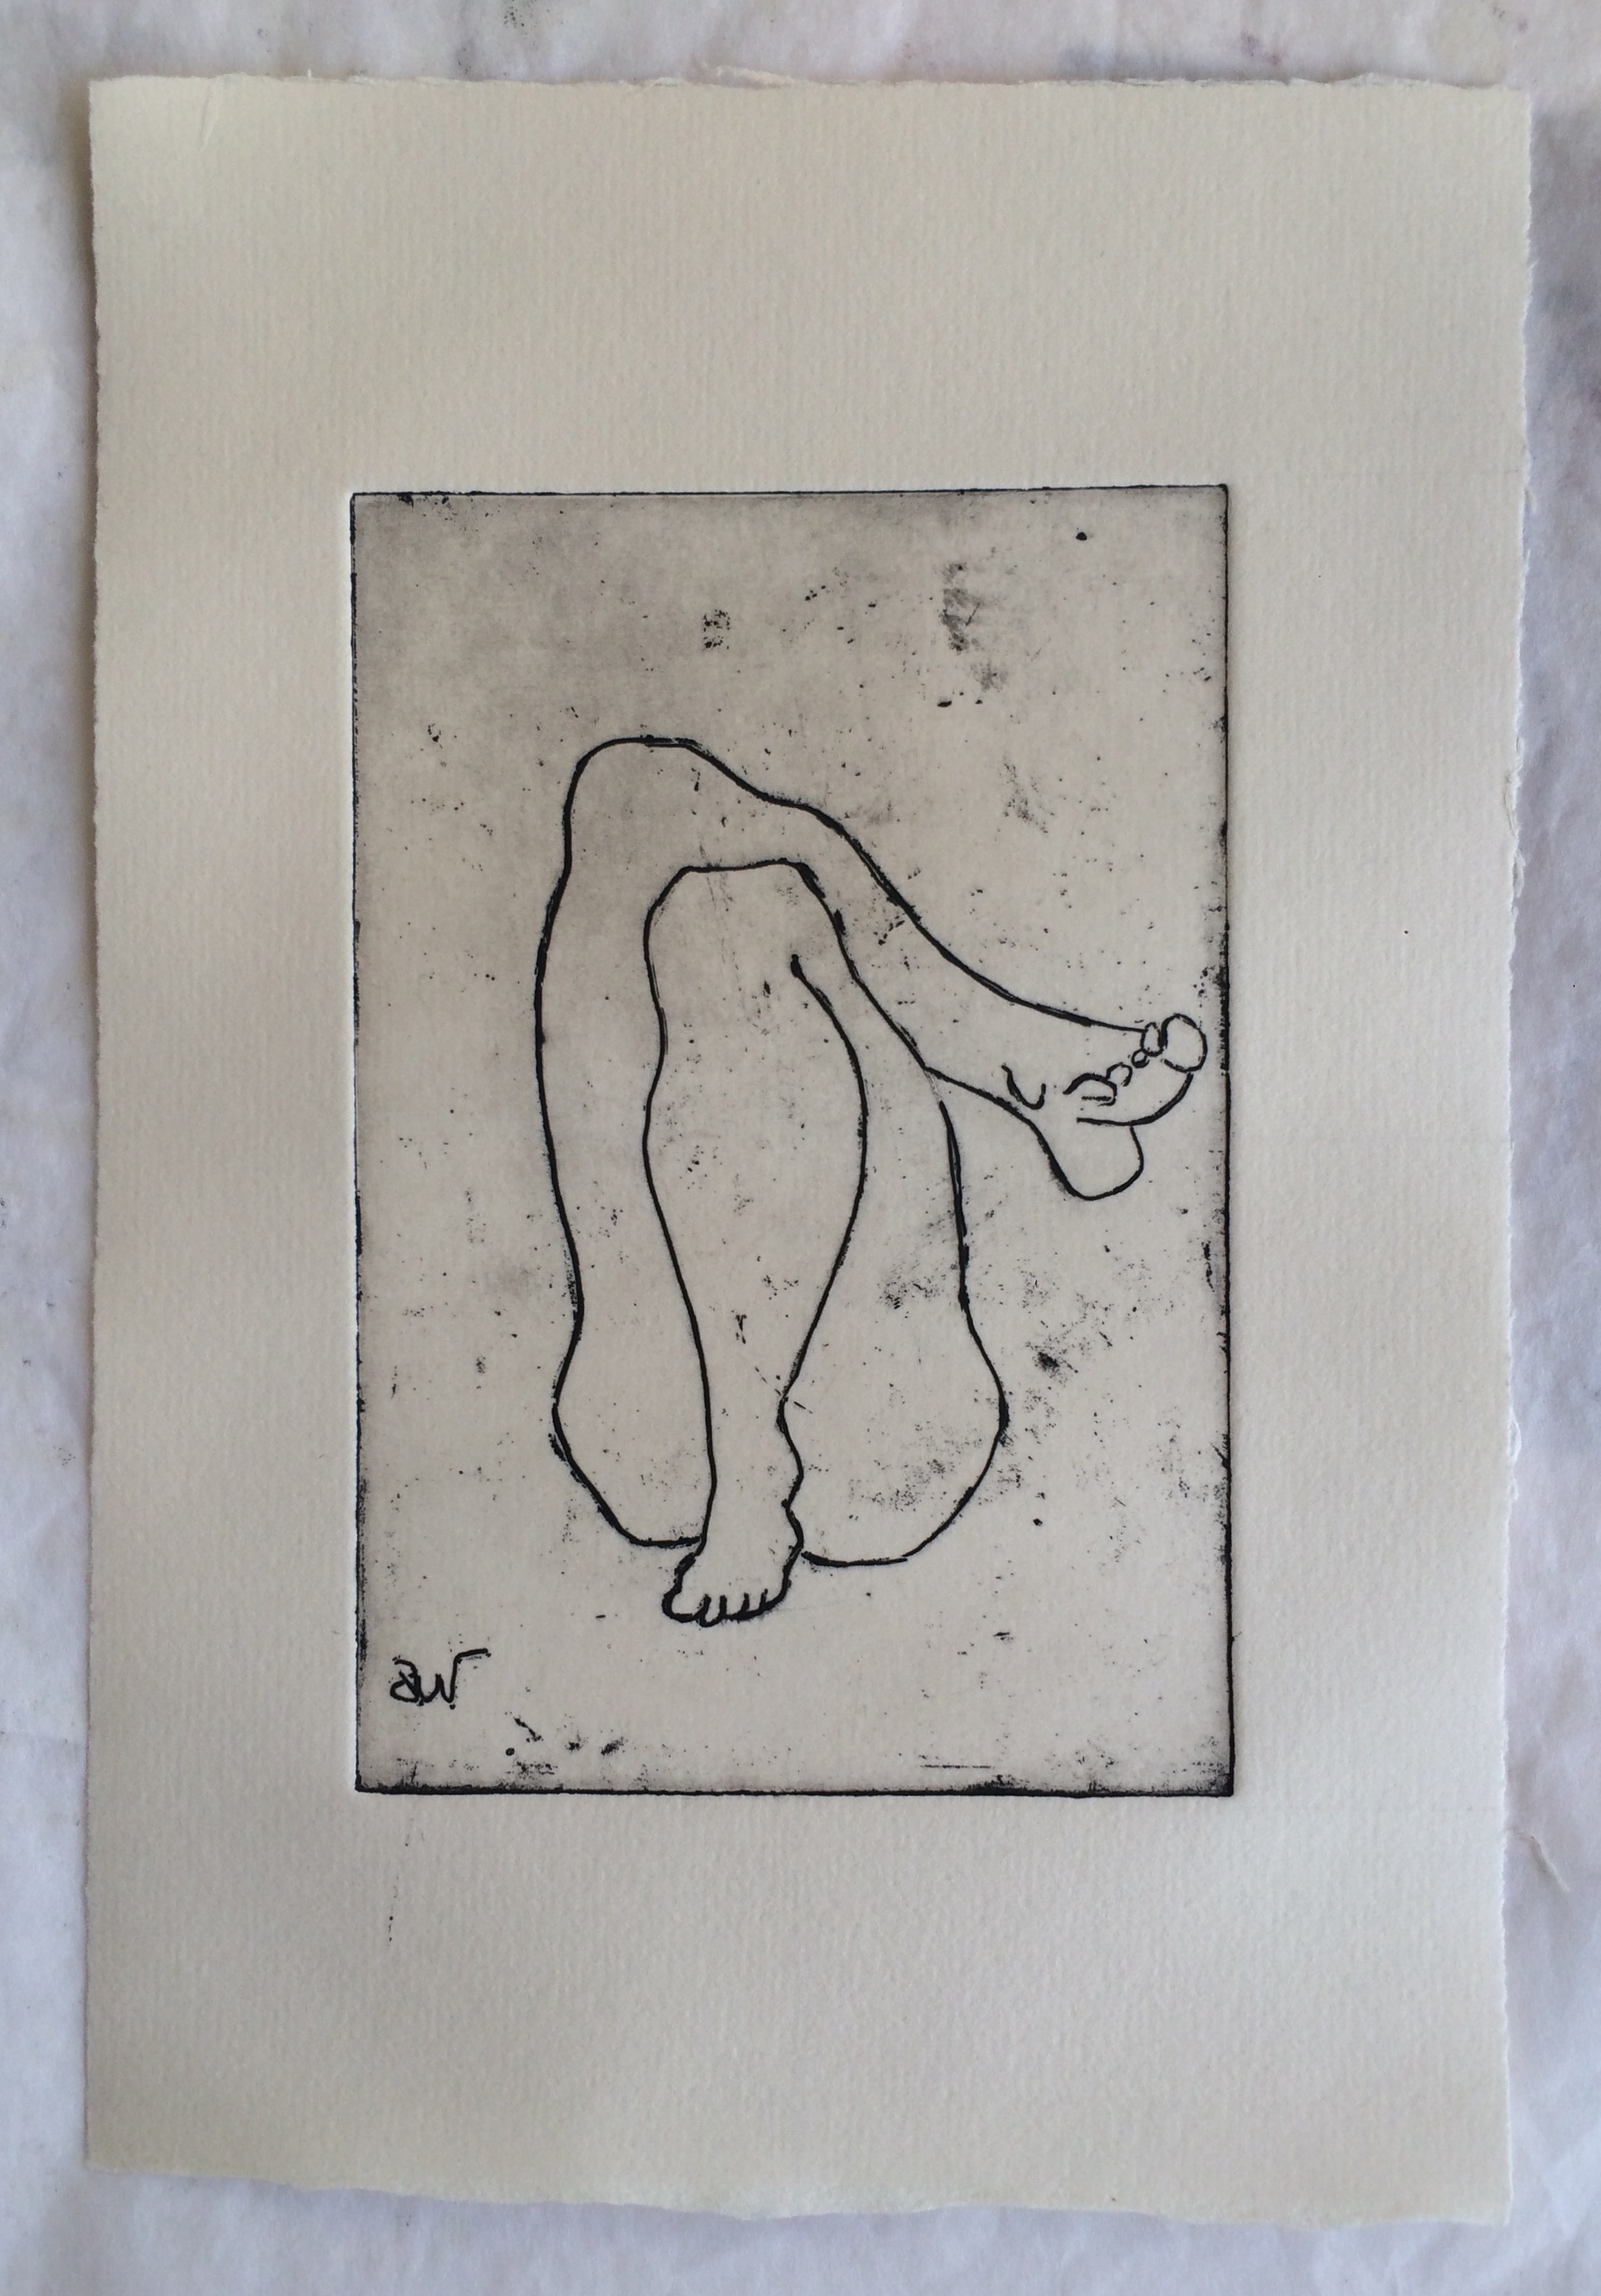 The etching is 10x15 cm, the paper is 16x24 cm.